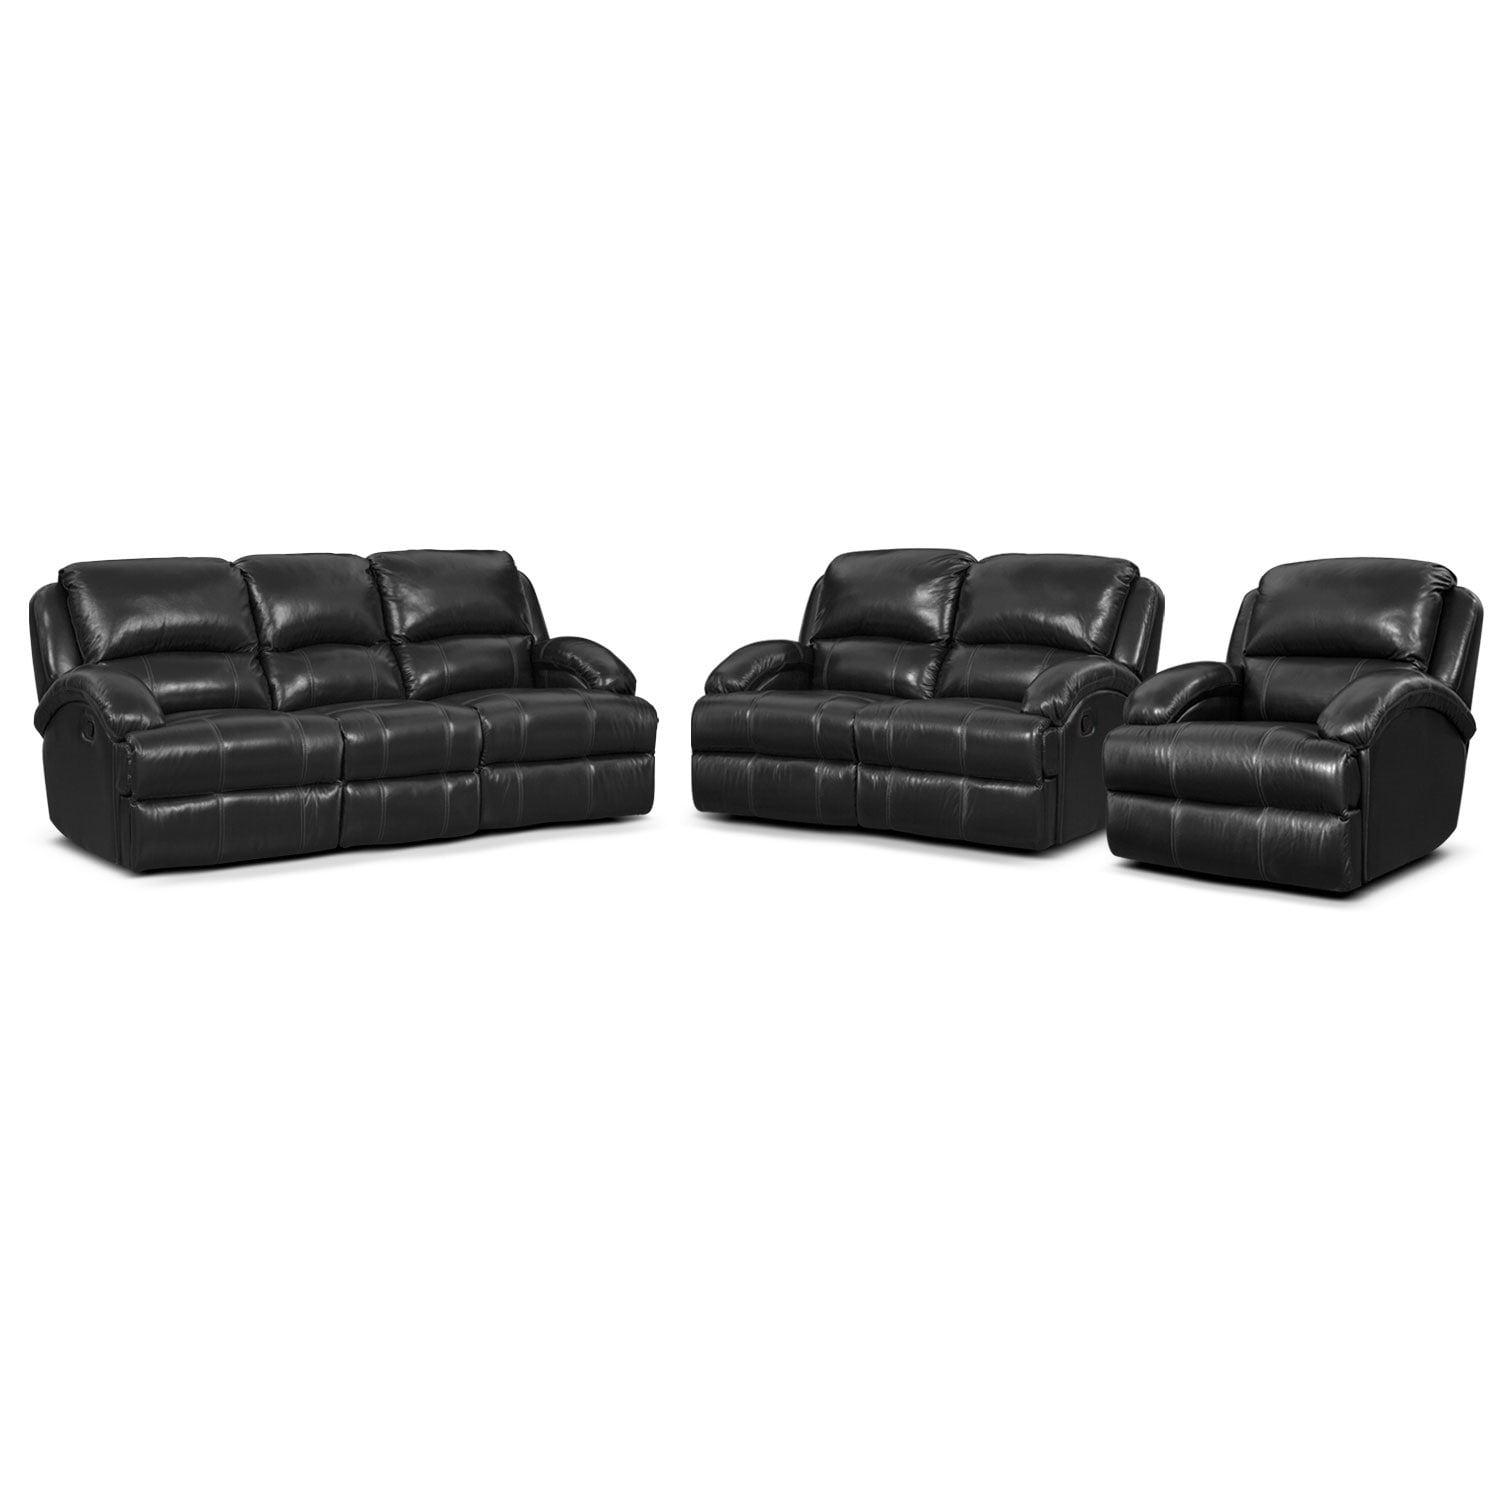 Living Room Furniture - Nolan II 3 Pc. Reclining Living Room